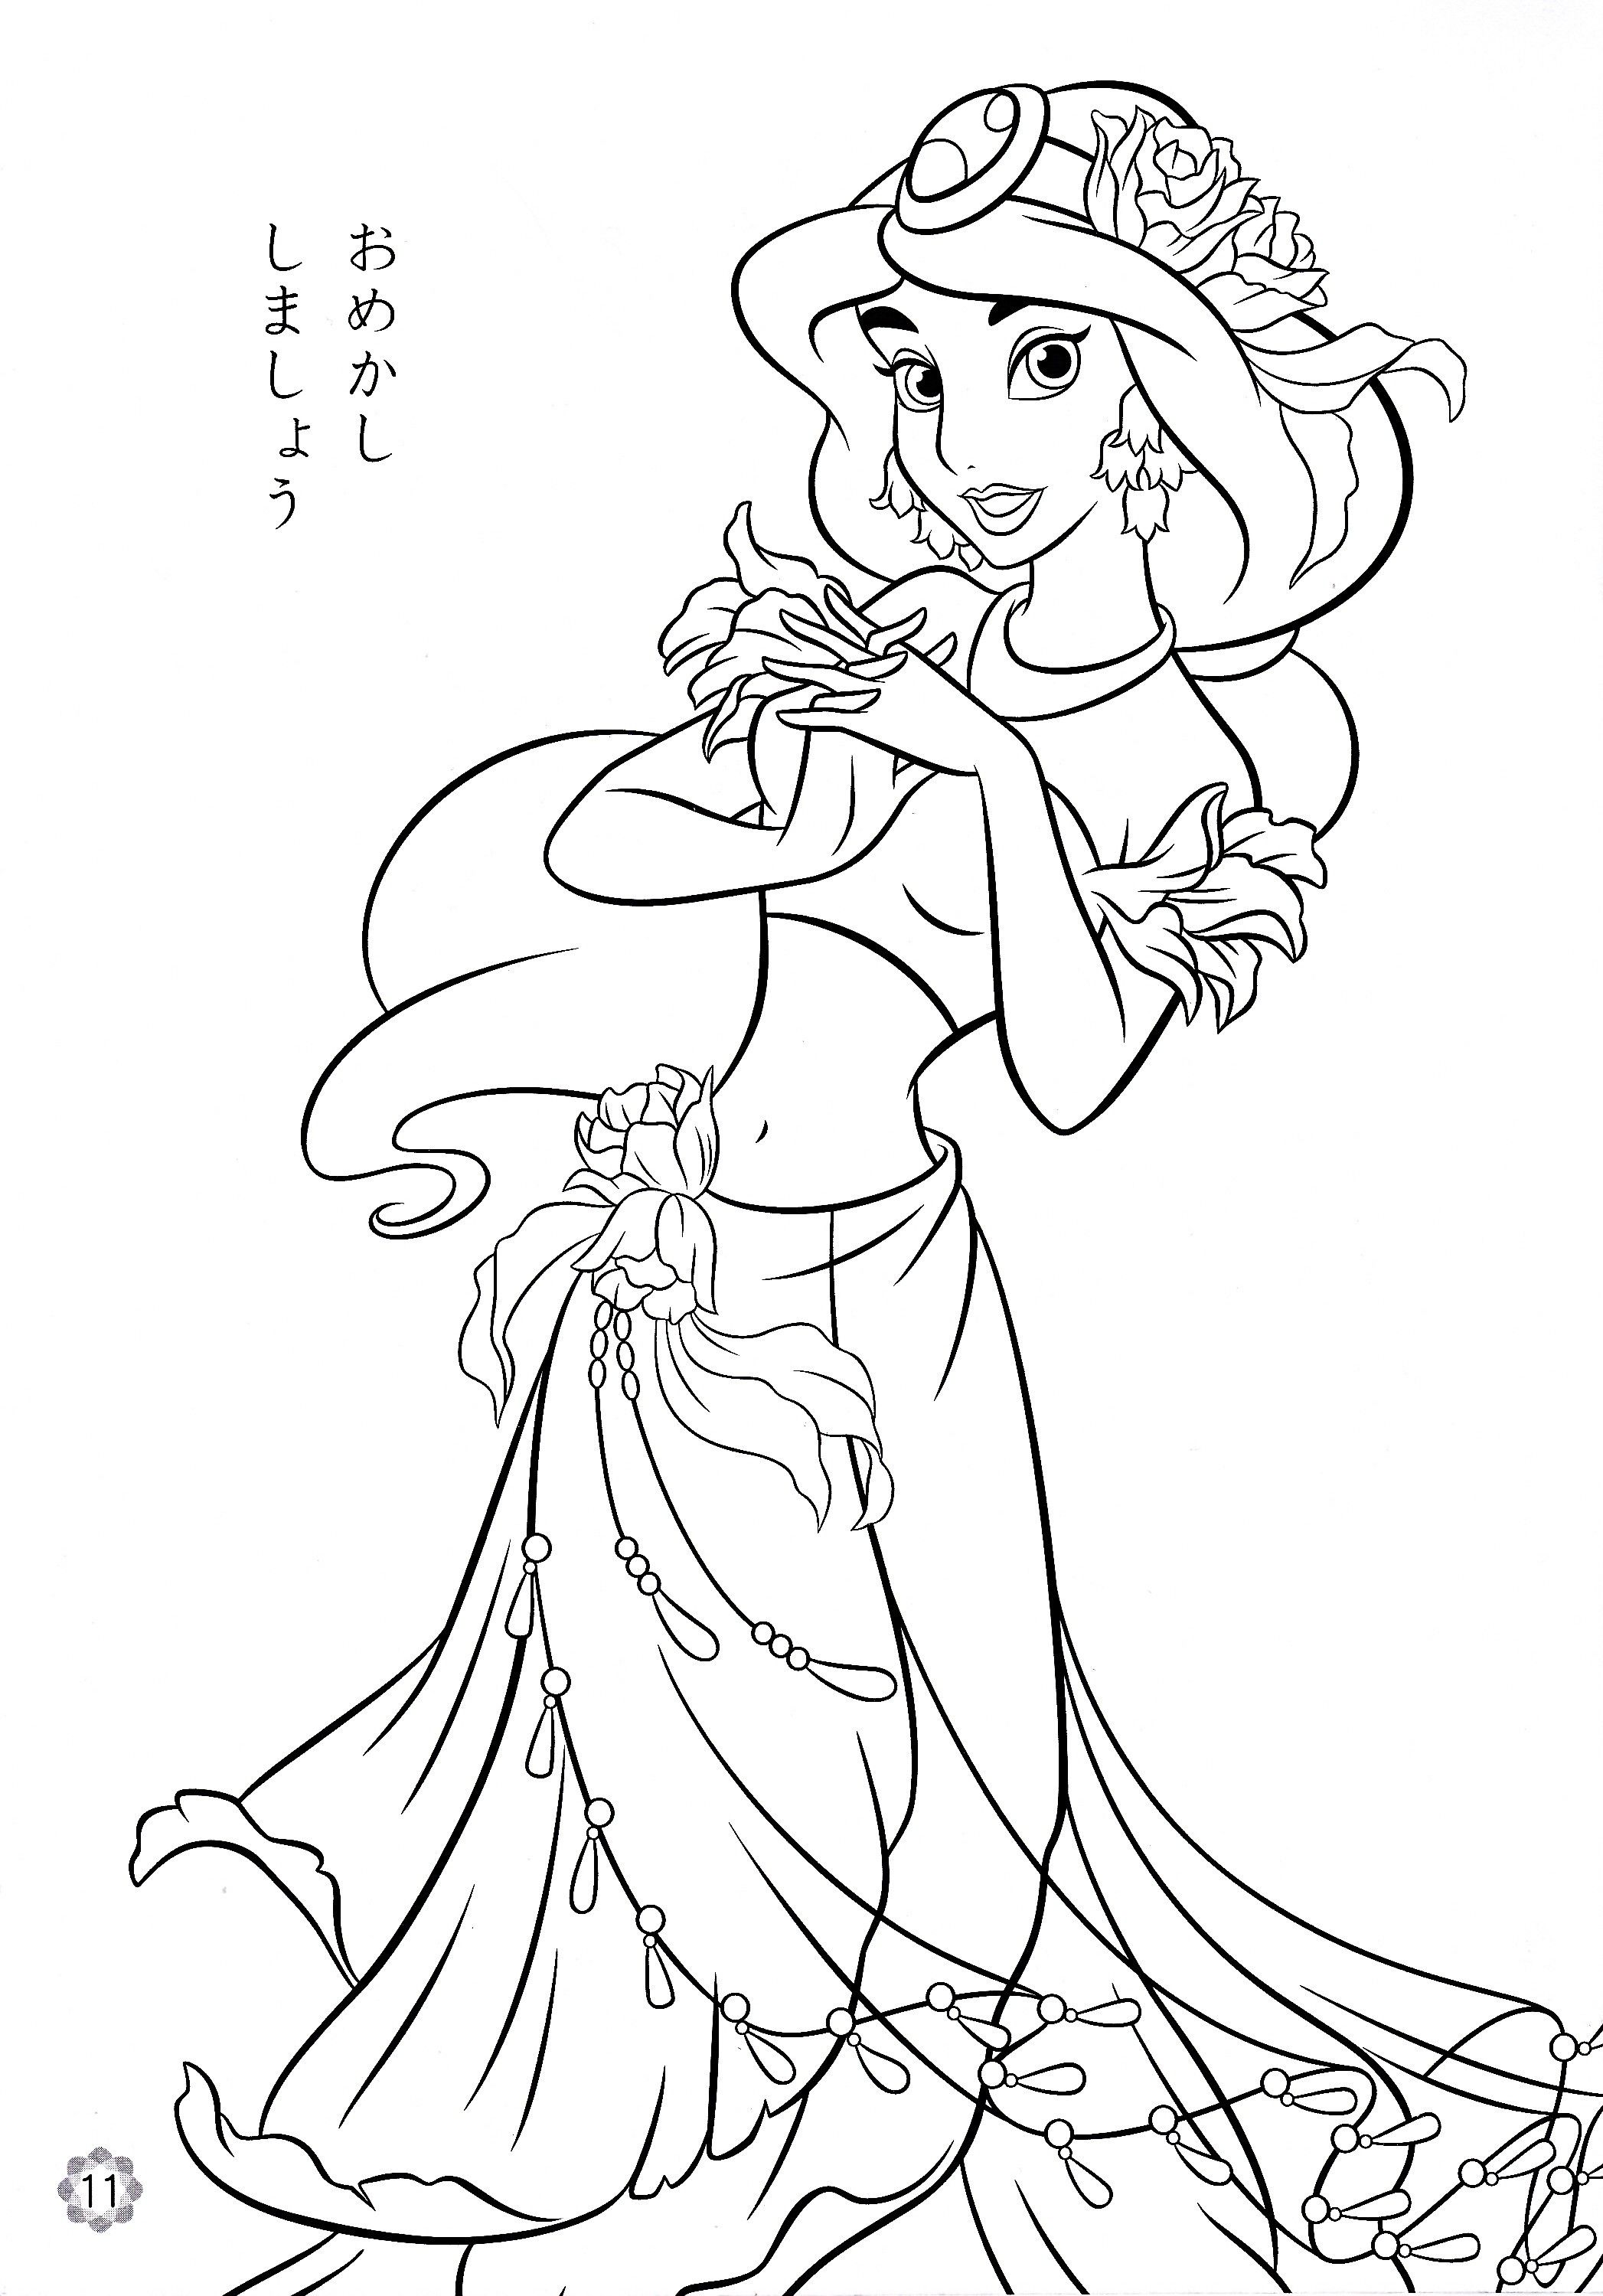 Free Printable Coloring Pages Princess Jasmine Through The Thousands Of Pictures Disney Princess Coloring Pages Ariel Coloring Pages Rapunzel Coloring Pages